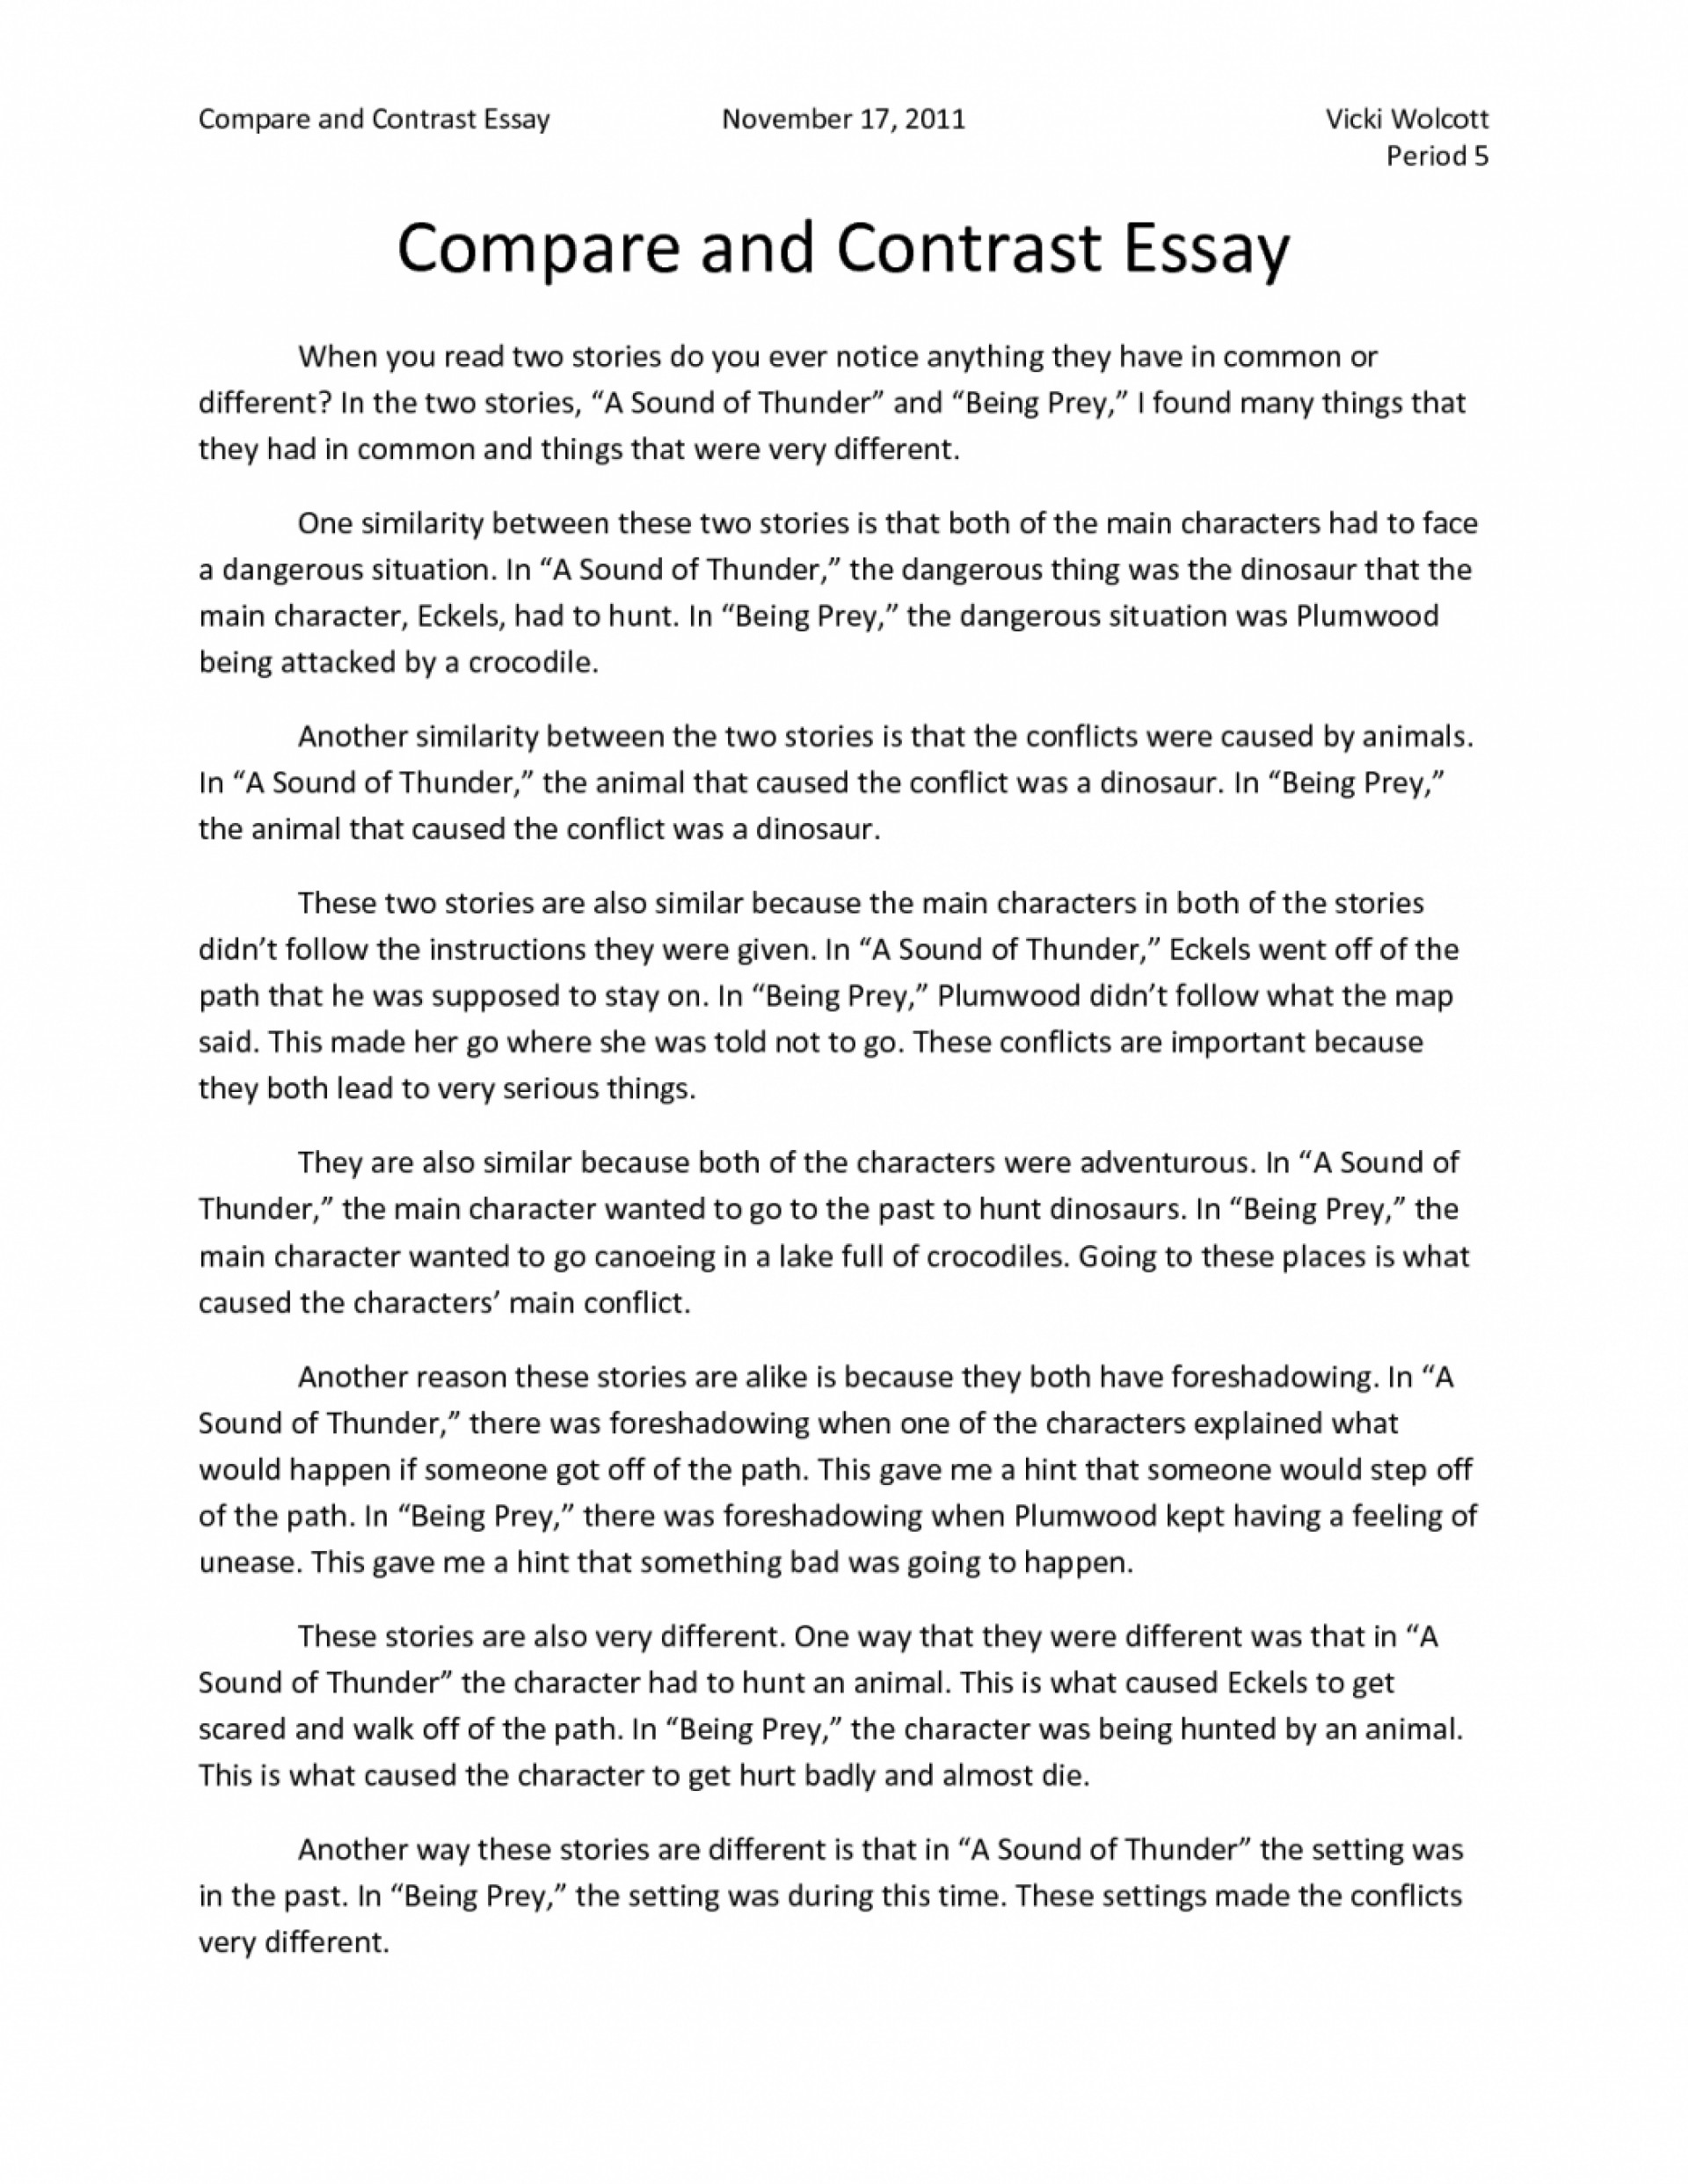 001 Good Compare And Contrast Essay Topics Example For College Easy Argumentative Students Exceptional Elementary In The Medical Field 1920